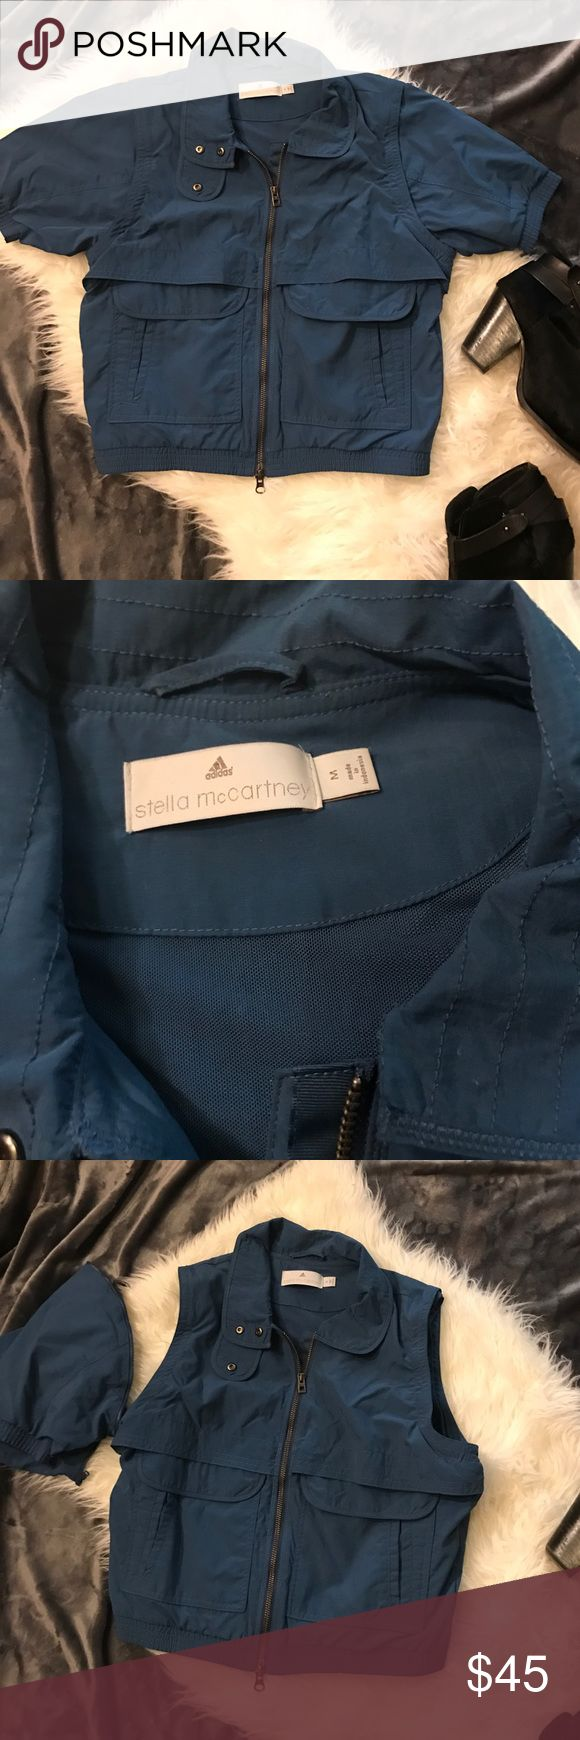 Adidas Stella MacCartney windbreaker 2-in-1 vest Awesome windbreaker and vest ( sleeves can be unzipped) barely worn. Excellent condition 100% nylon Adidas Jackets & Coats